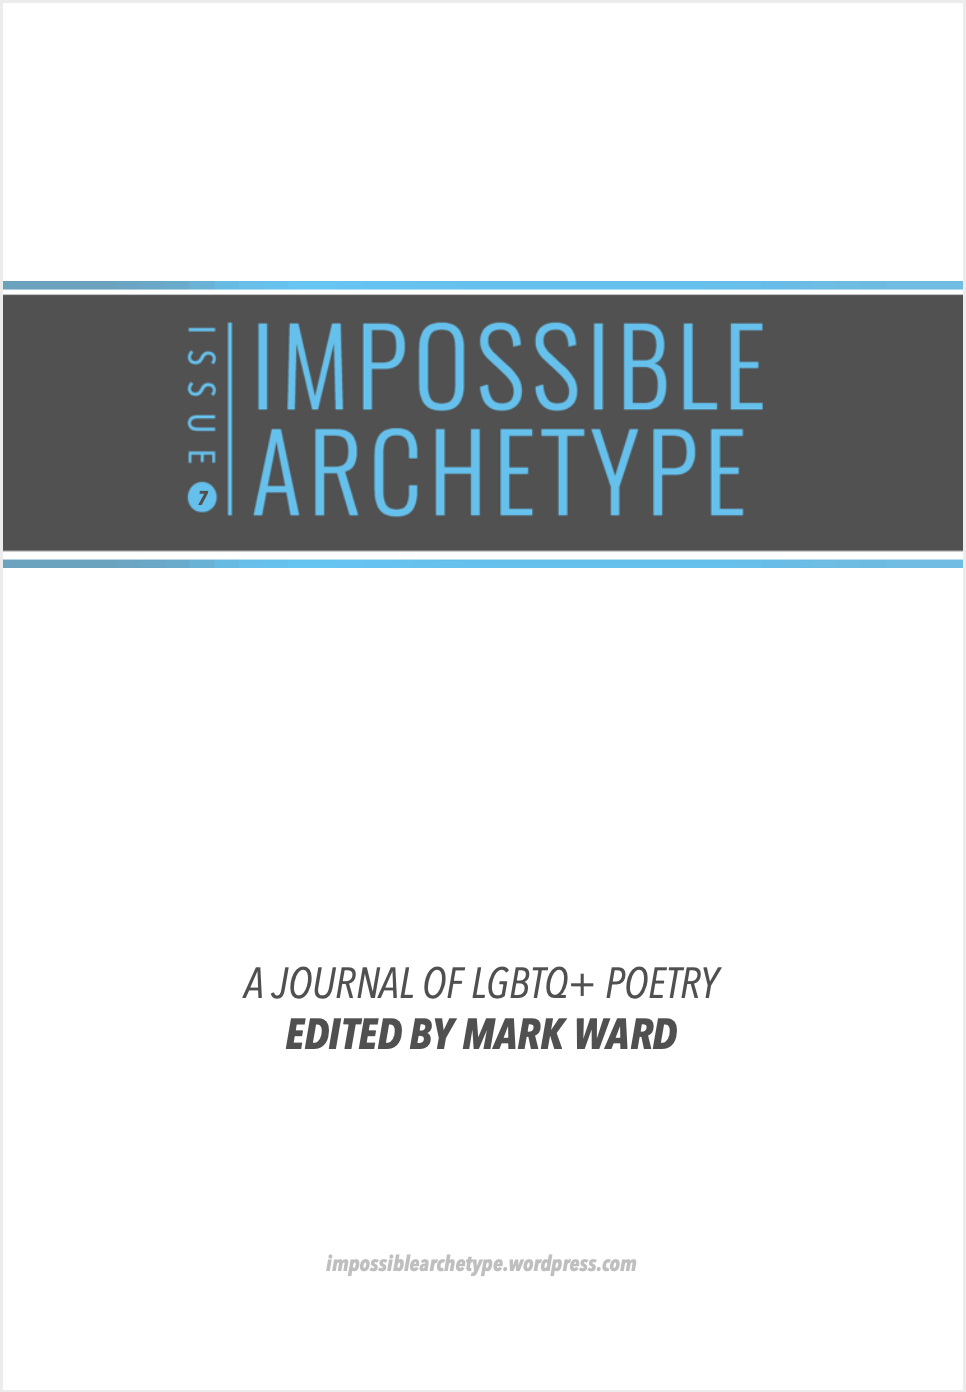 Cover of Issue 7 of Impossible Archetype, a Journal of LGBTQ+ Poetry, edited by Mark Ward